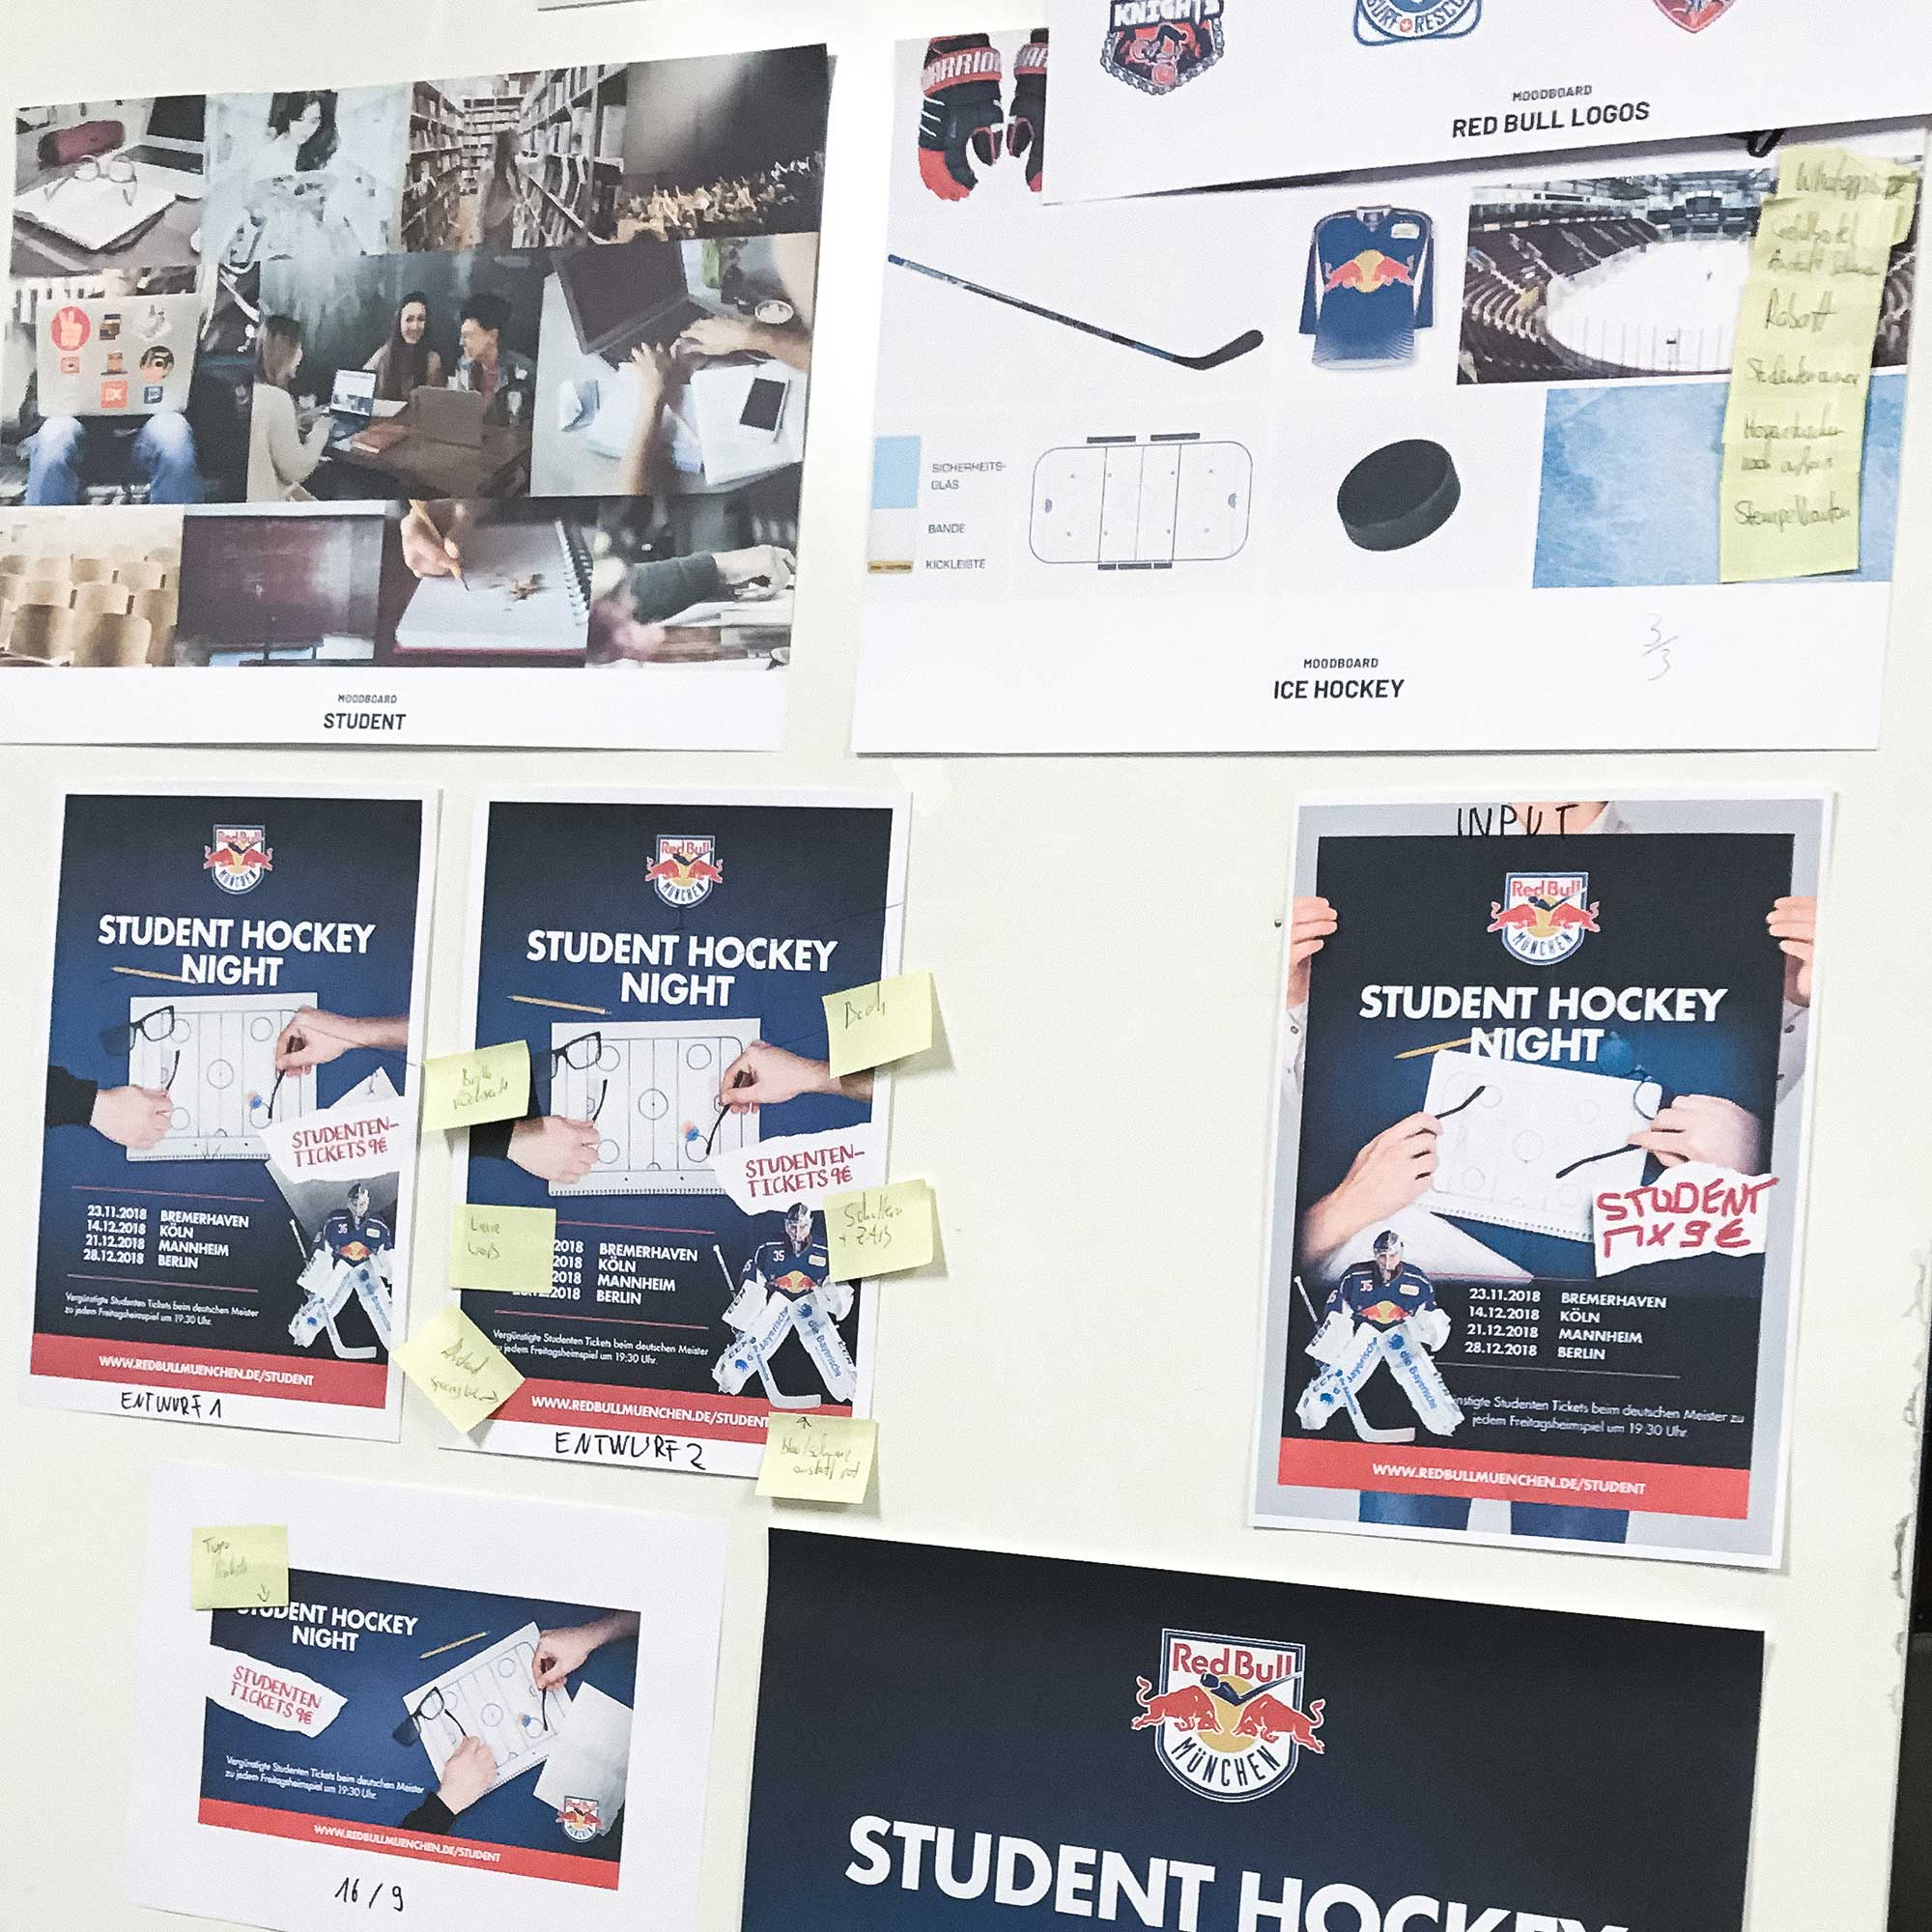 wearethisis_this_is_design_studio_ehc_red_bull_muenchen_ice_hockey_student_hockey_night_key_visual_workshop_persona